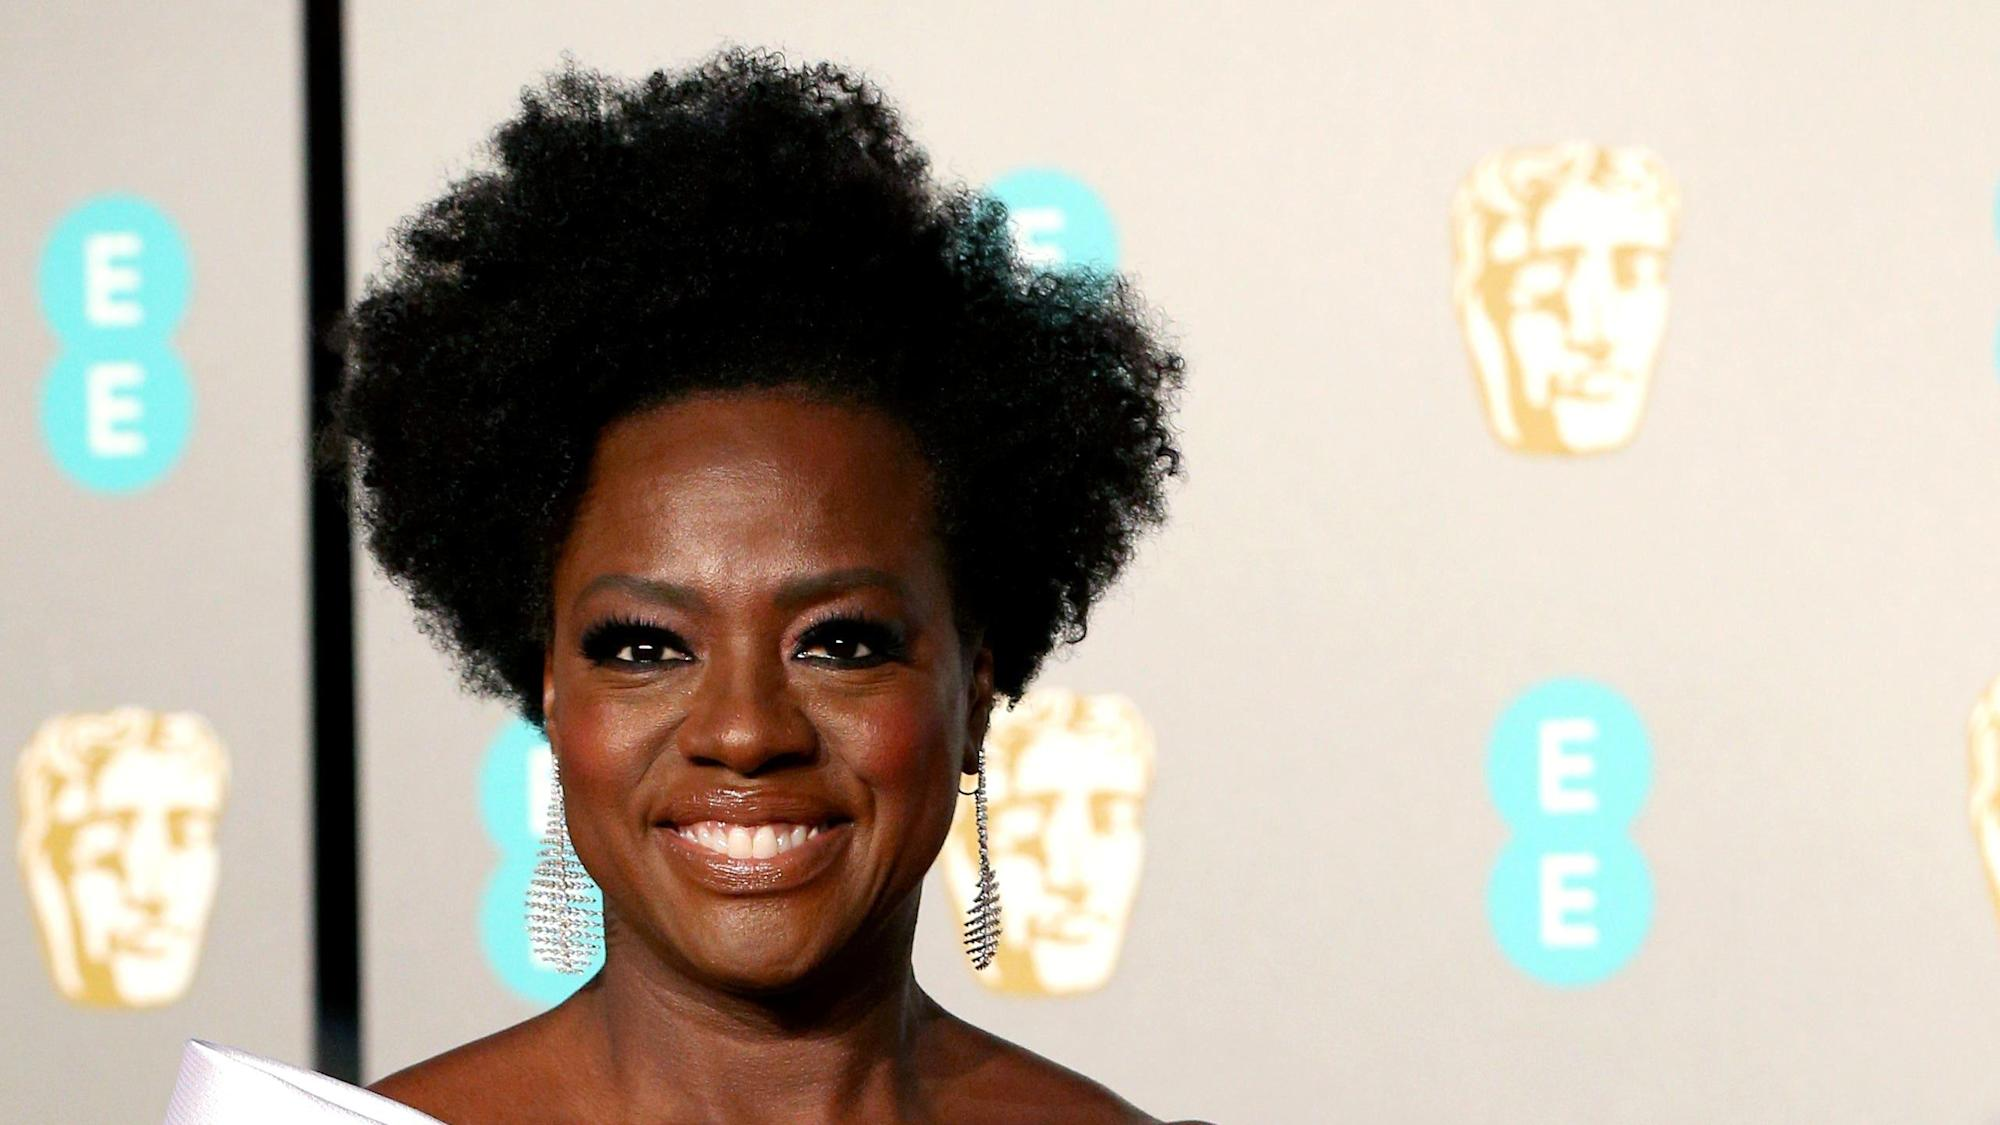 Viola Davis, Chloe Zhao and Emerald Fennell help women make Oscar history